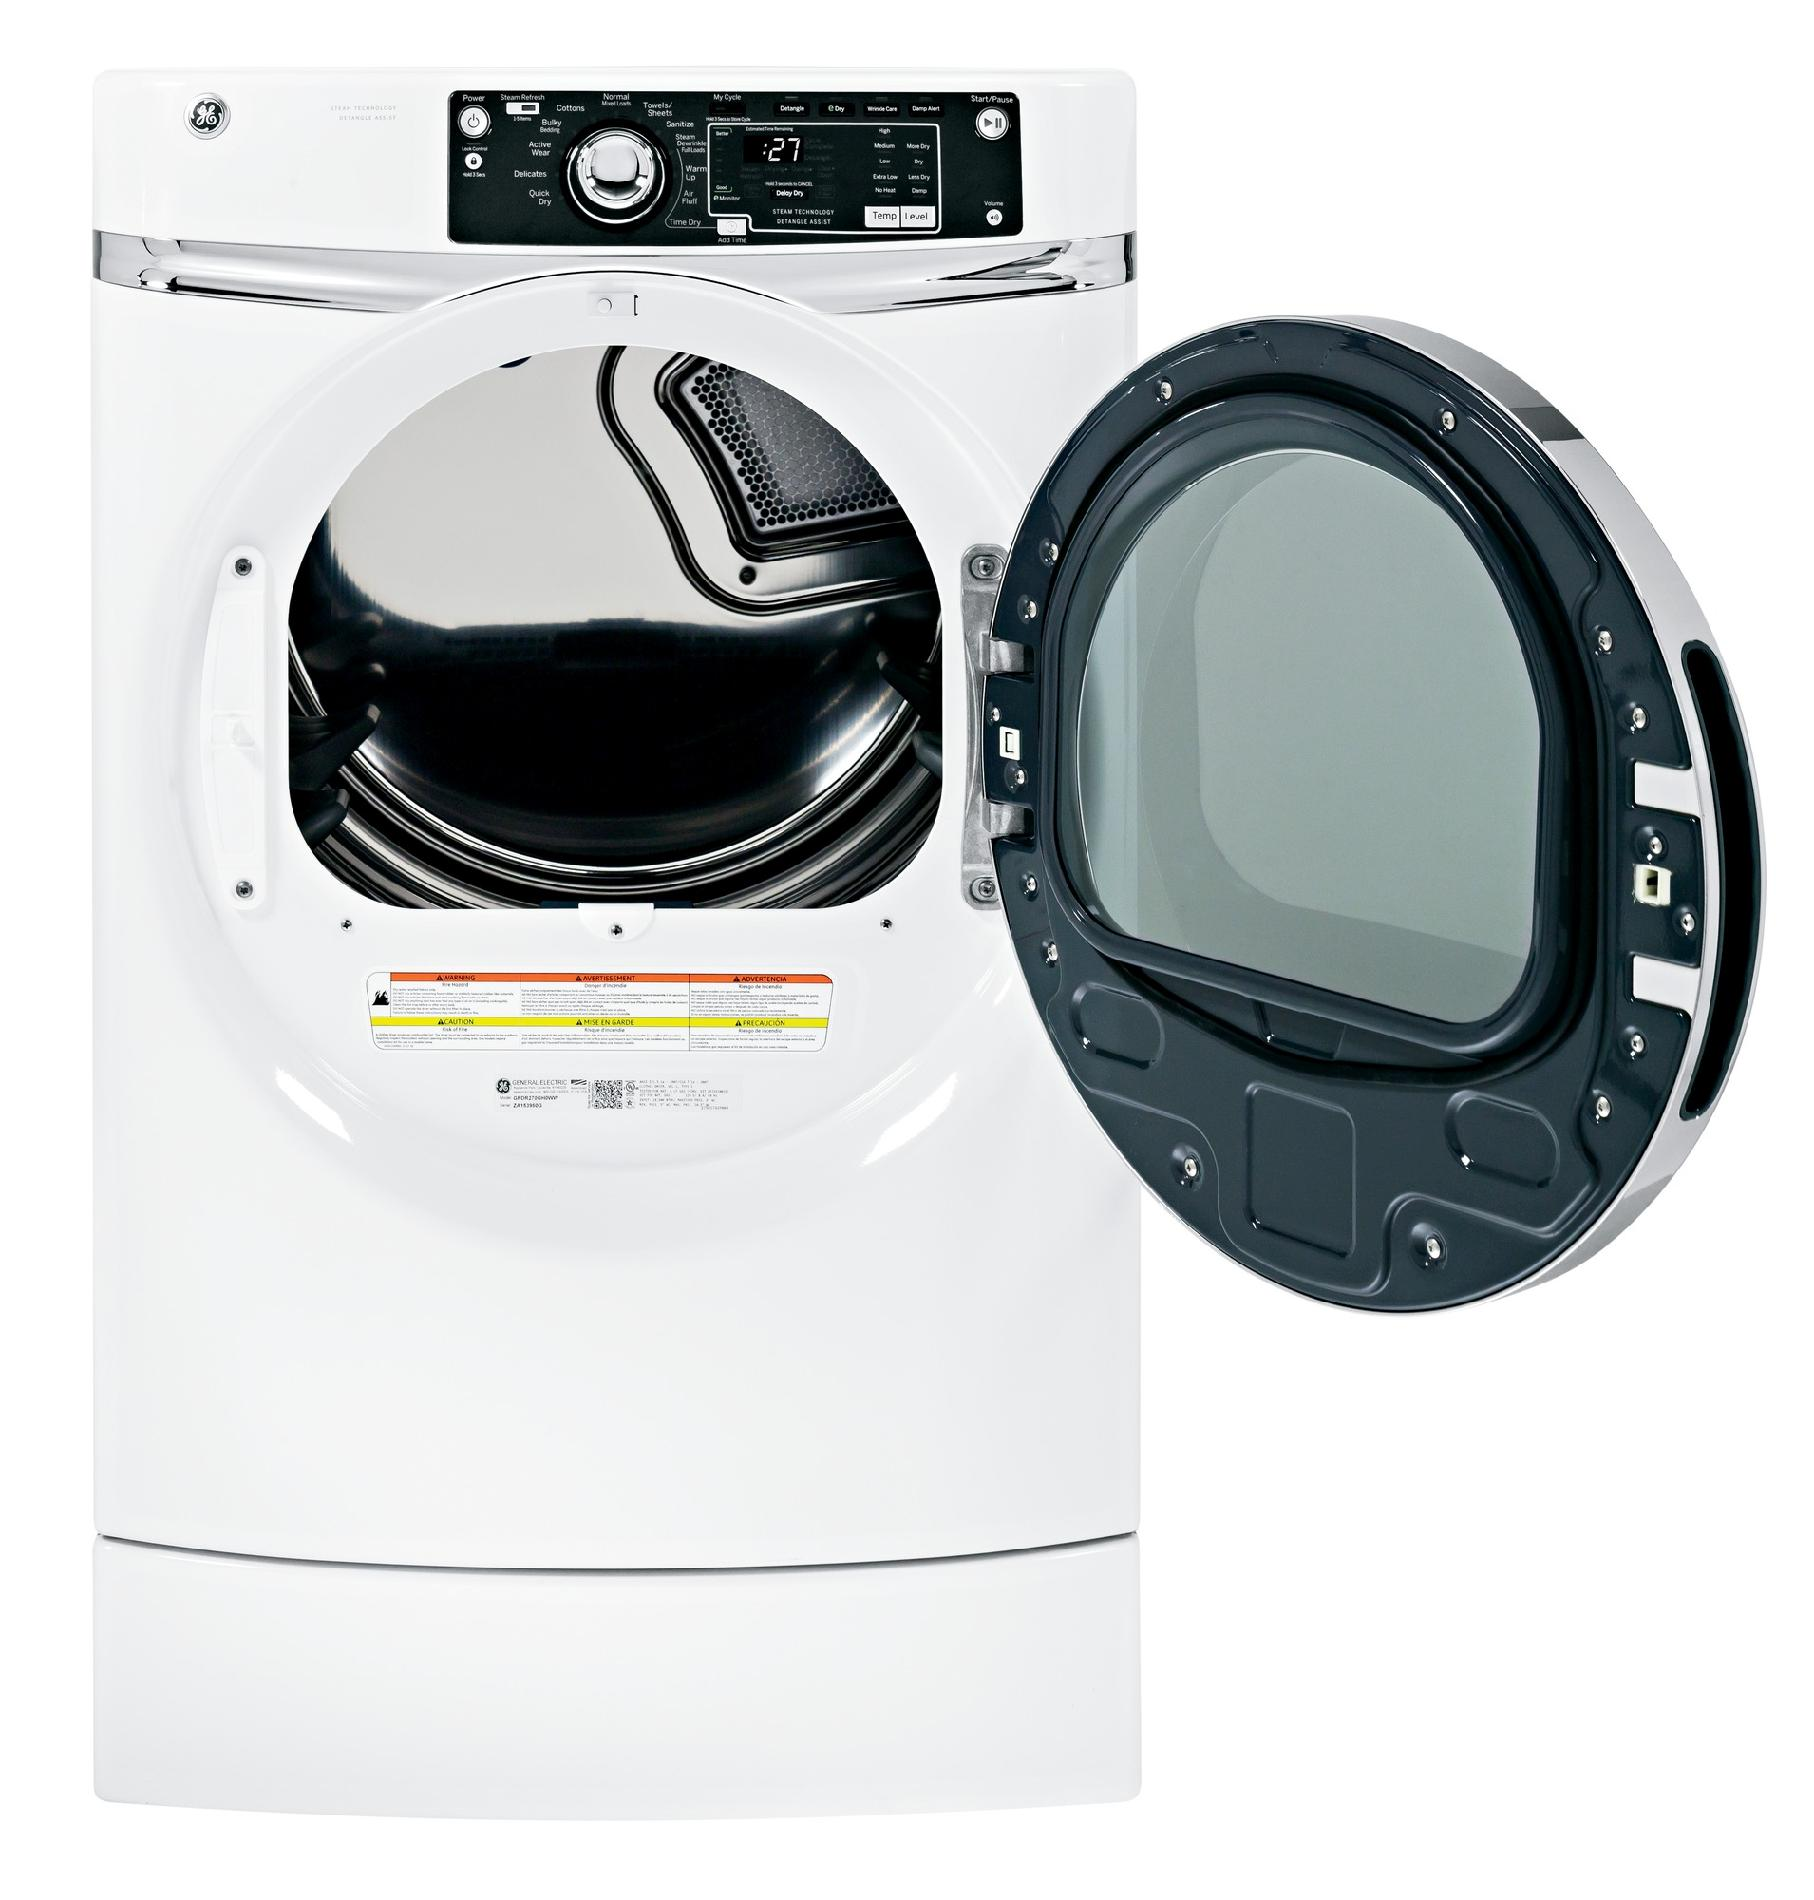 GE Appliances GFDR270GHWW 8.1 cu. ft. RightHeight™ Design Gas Dryer w/ Steam - White